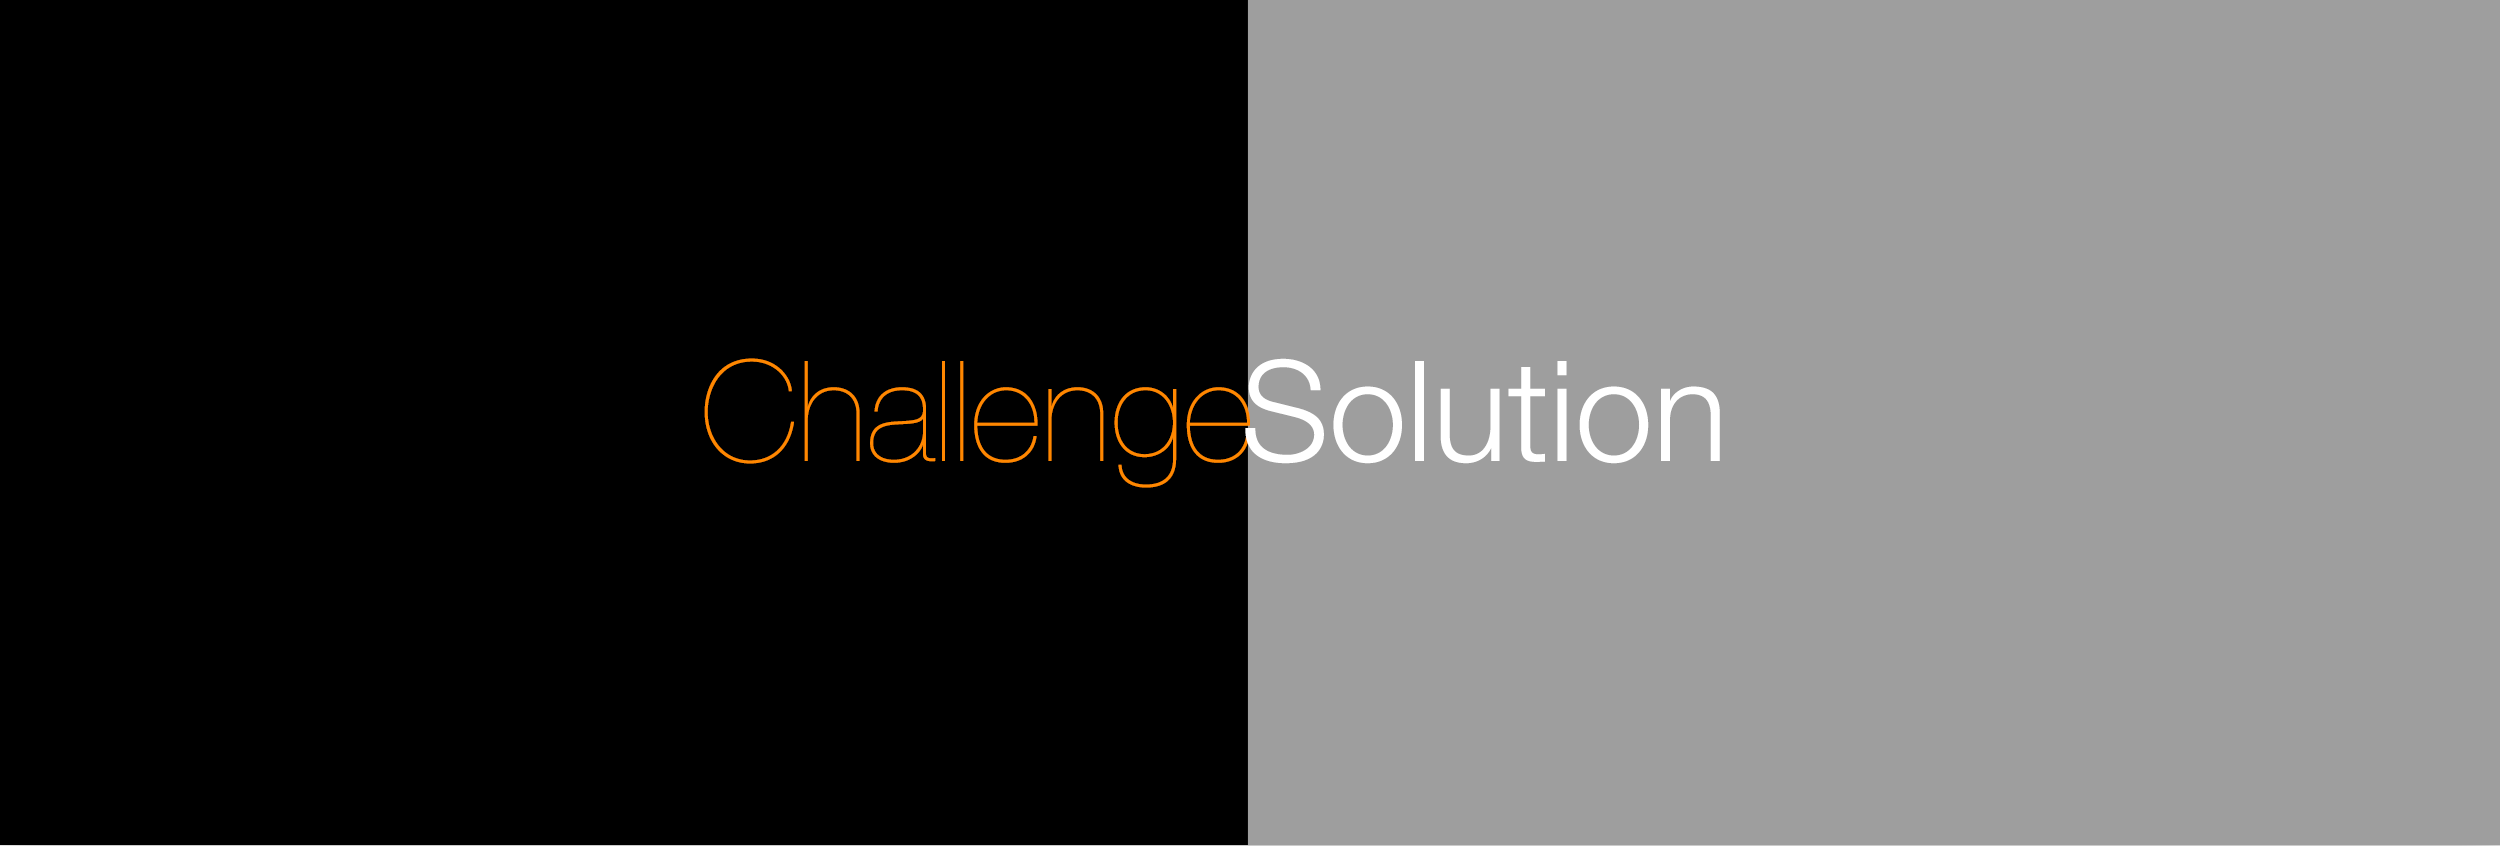 Challenge_Solution1.png